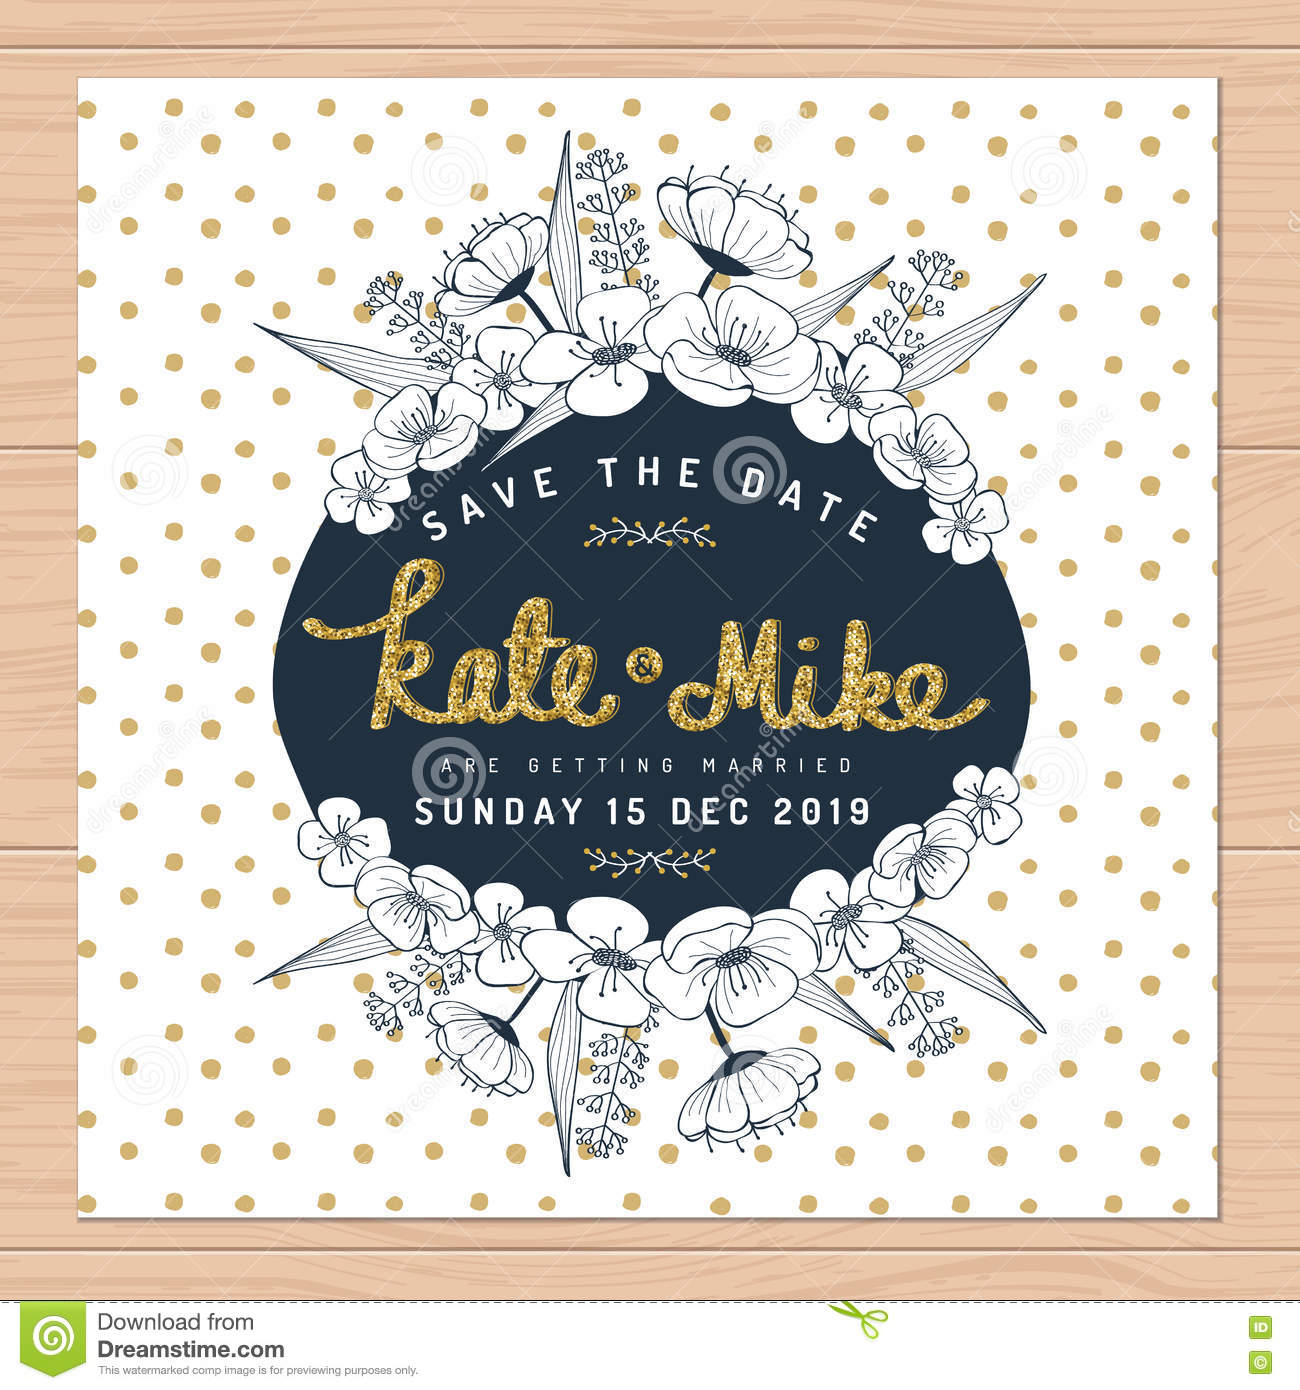 Golden Save The Date For Wedding Invitation Wedding: Save The Date, Wedding Invitation Card With Hand Drawn